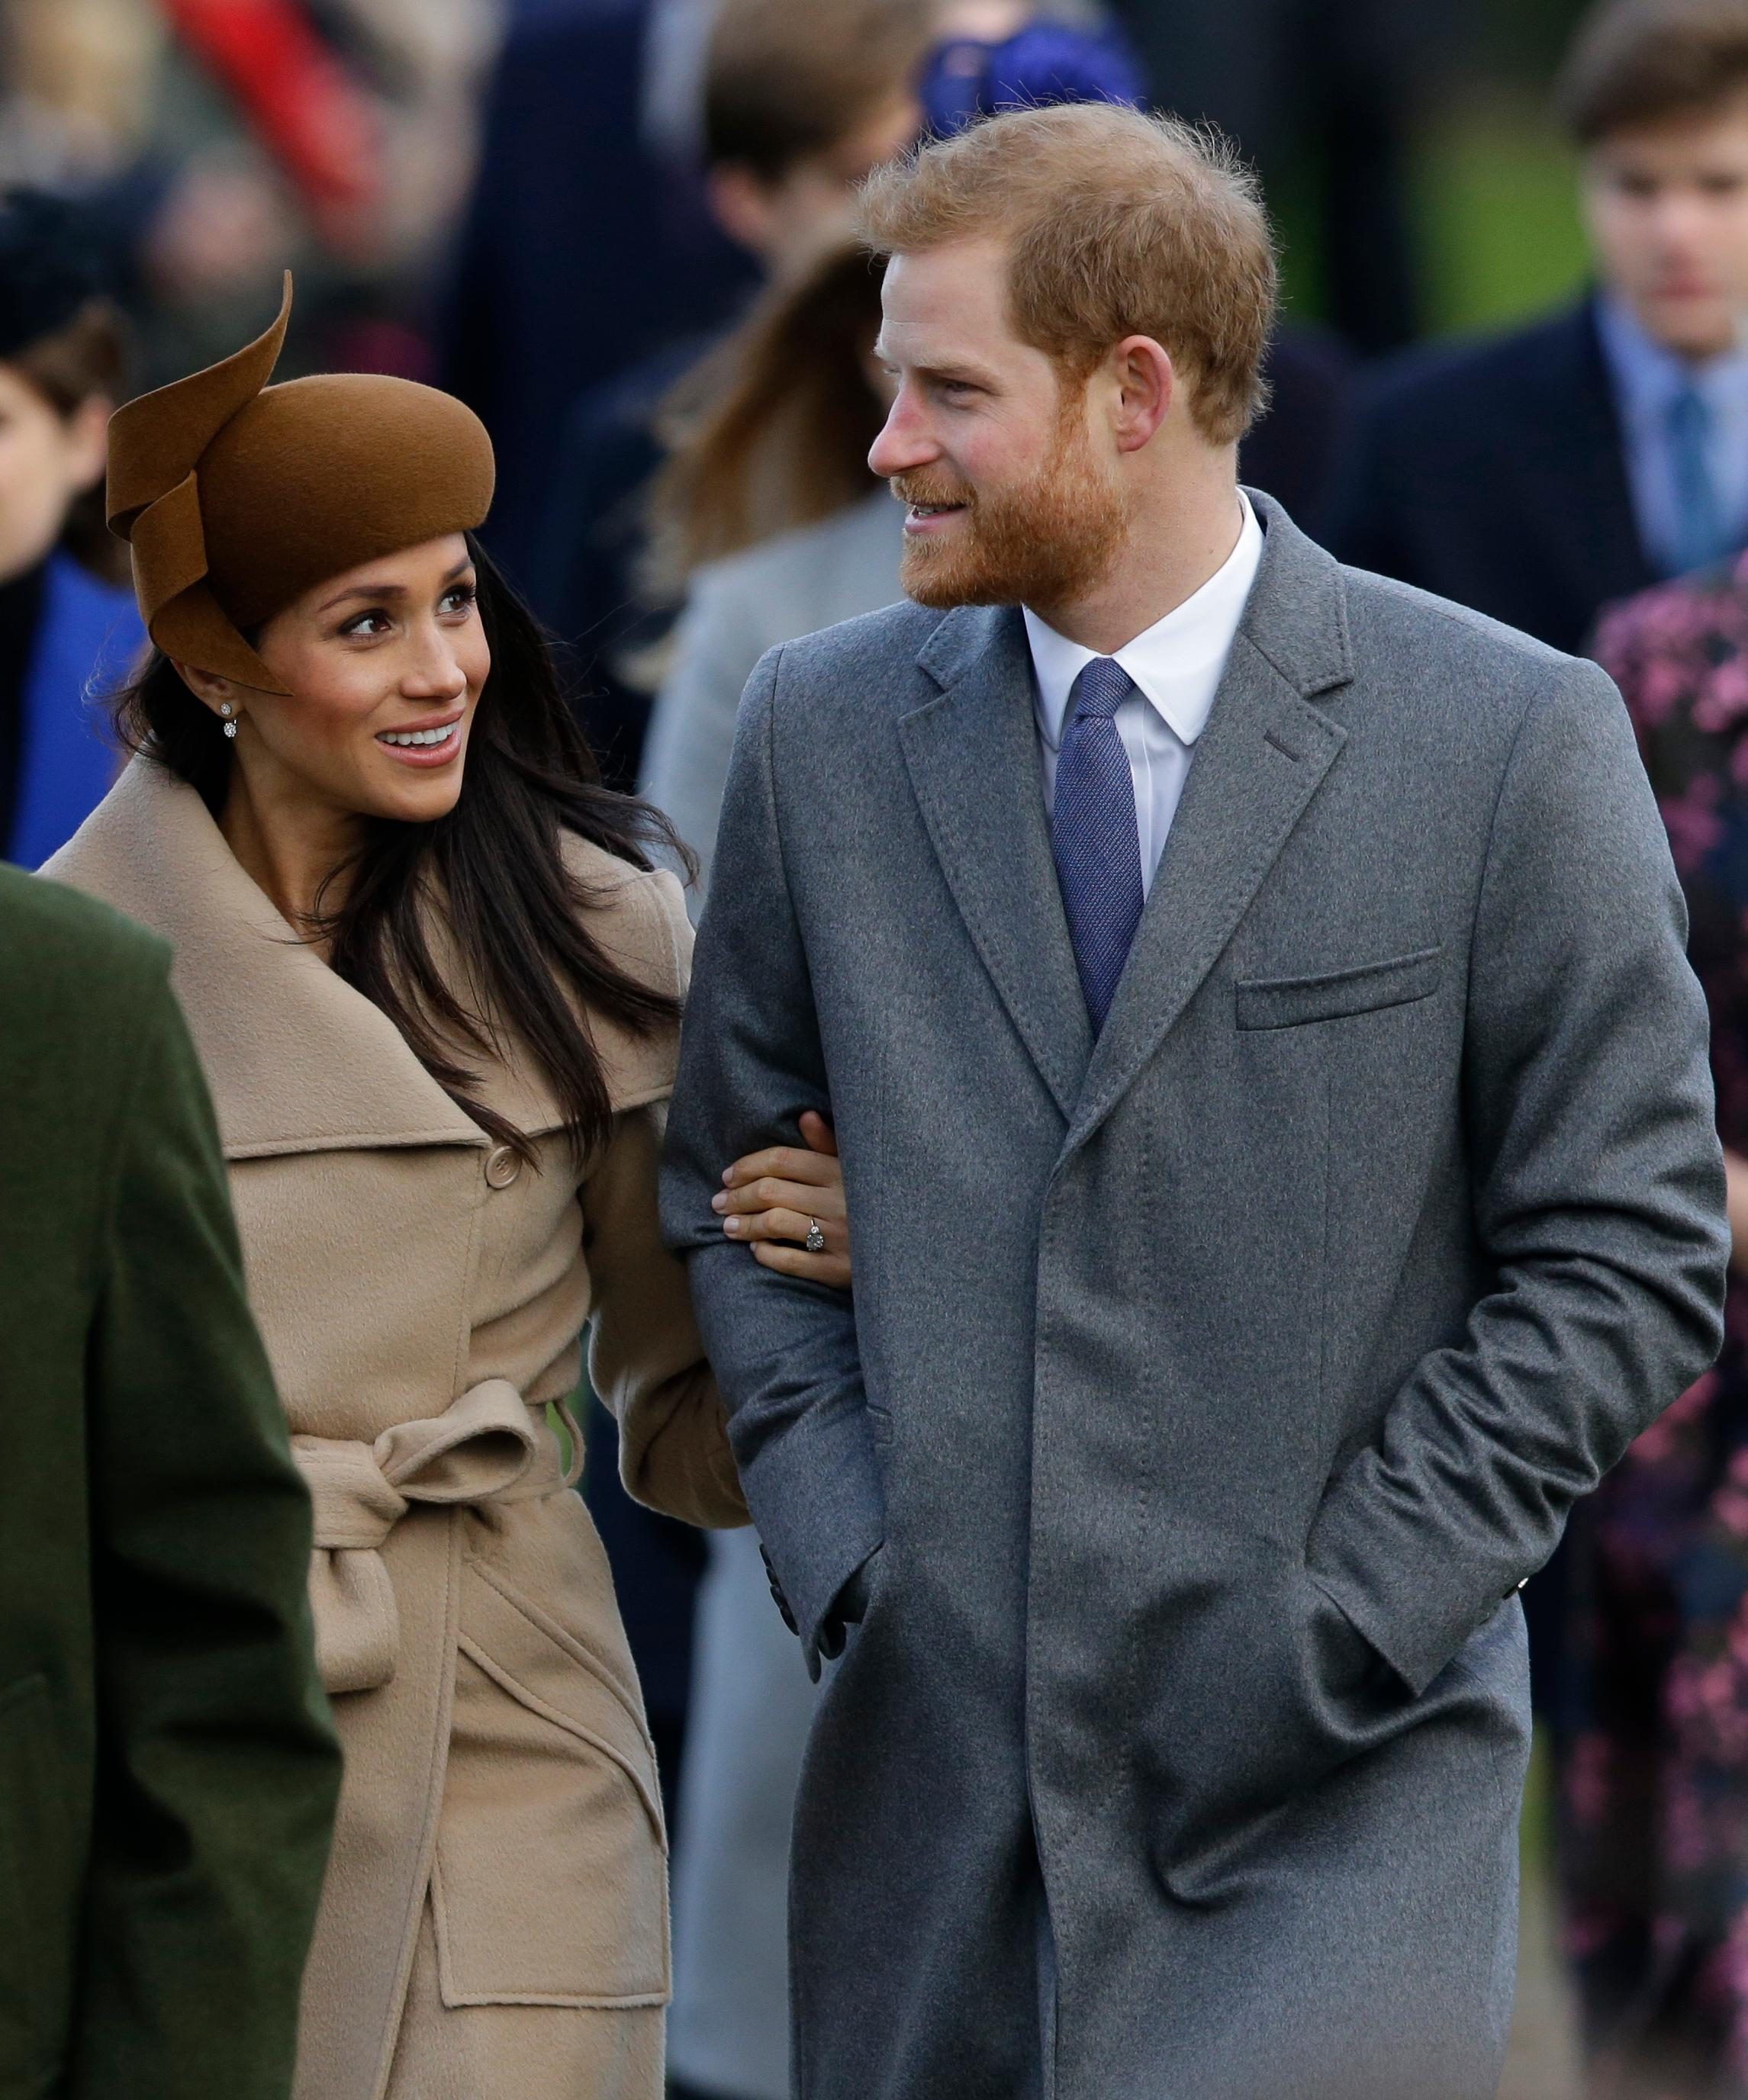 Prince Harry and his fiancee Meghan Markle arrive to their traditional Christmas Day service, at St. Mary Magdalene Church in Sandringham, England, Monday, Dec. 25, 2017. (AP Photo/Alastair Grant)